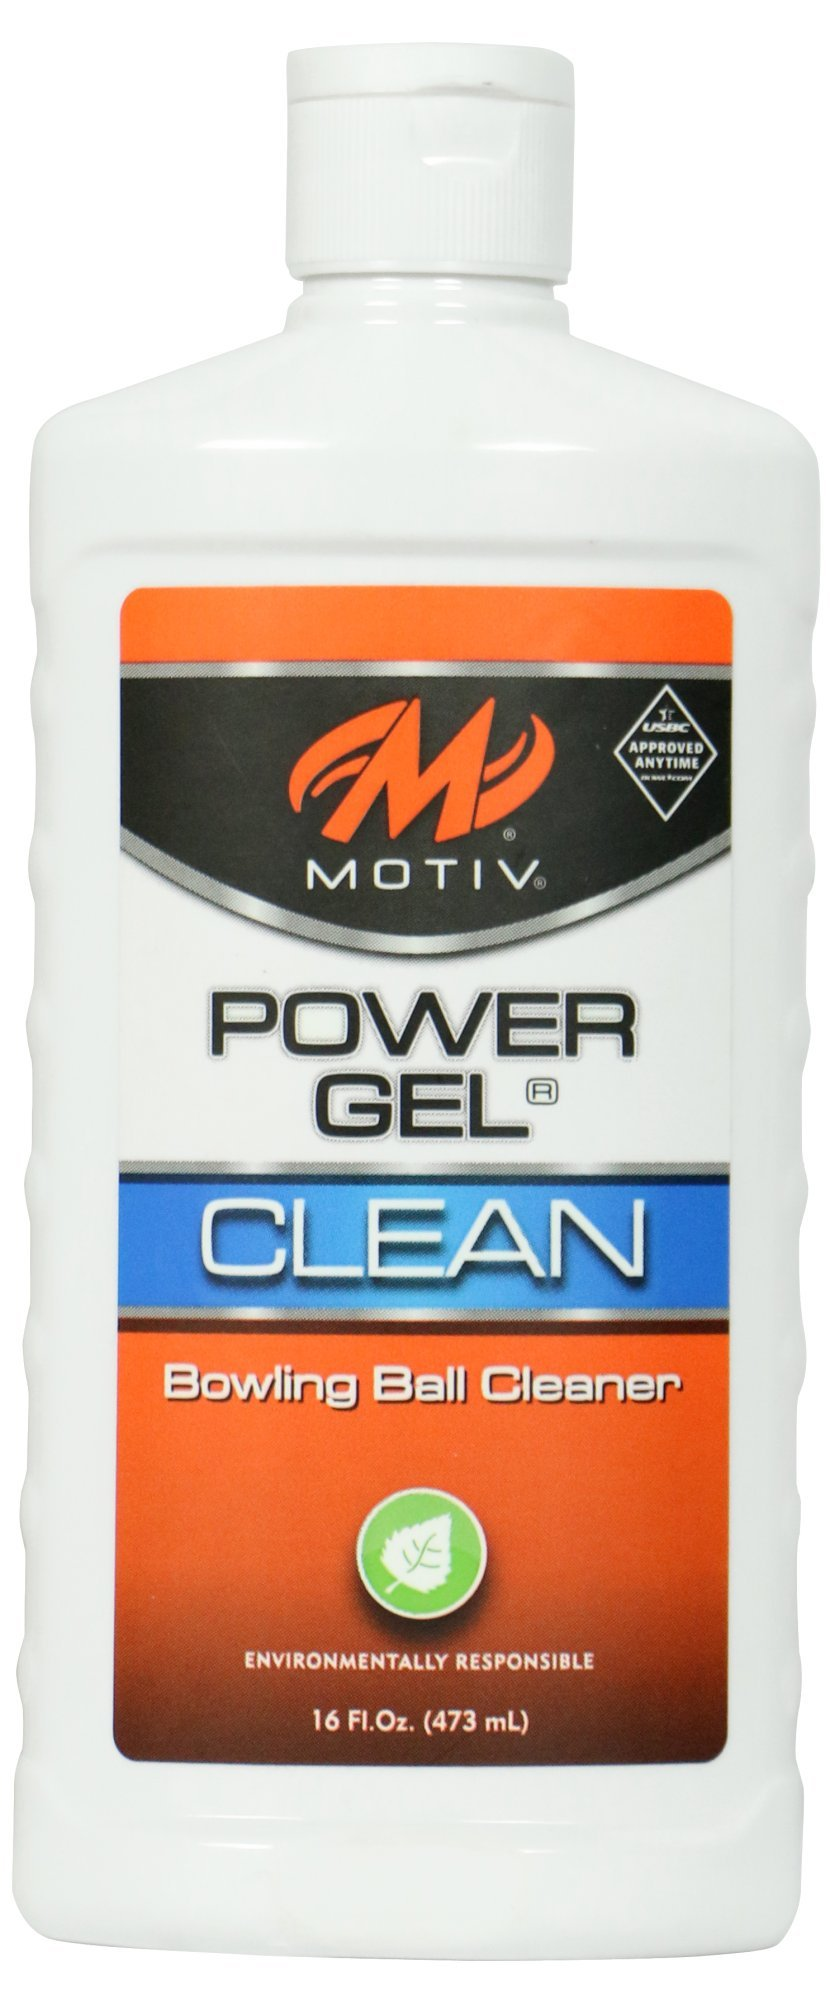 MOTIV Power Gel Clean by MOTIV Bowling Products